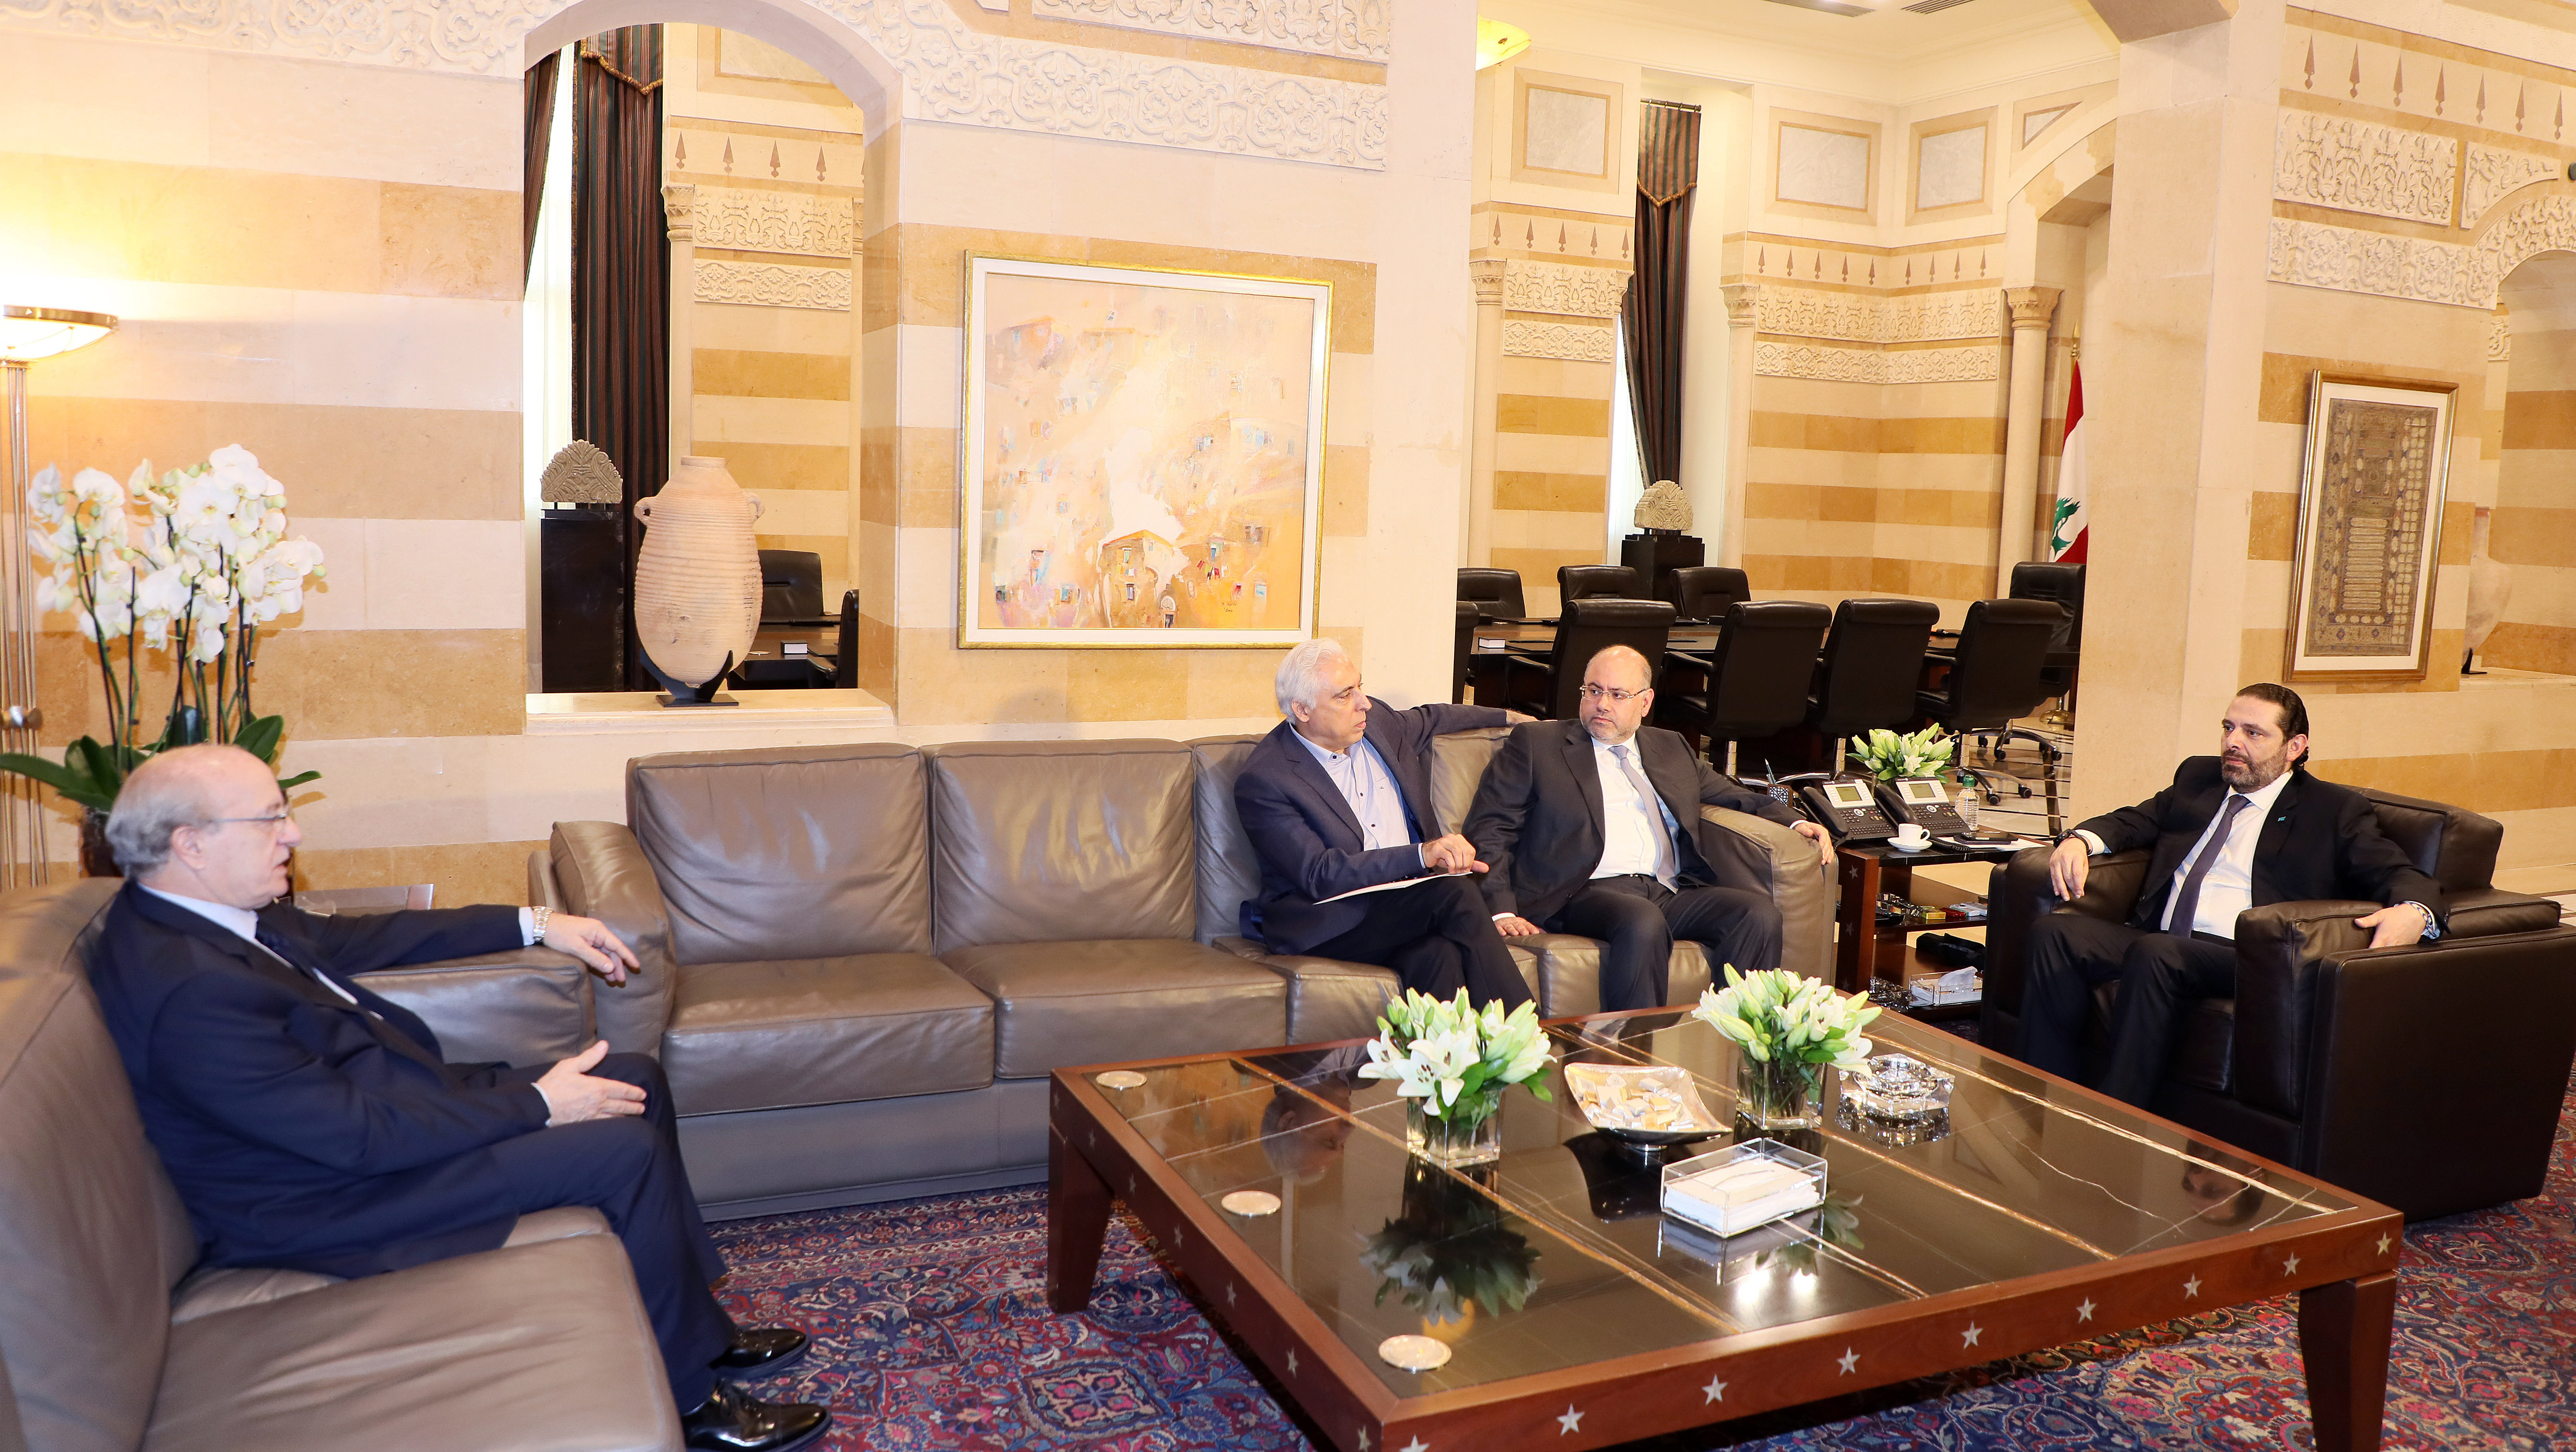 Pr Minister Saad Hariri meets Former Minister Ghatas Khoury with a Delegation